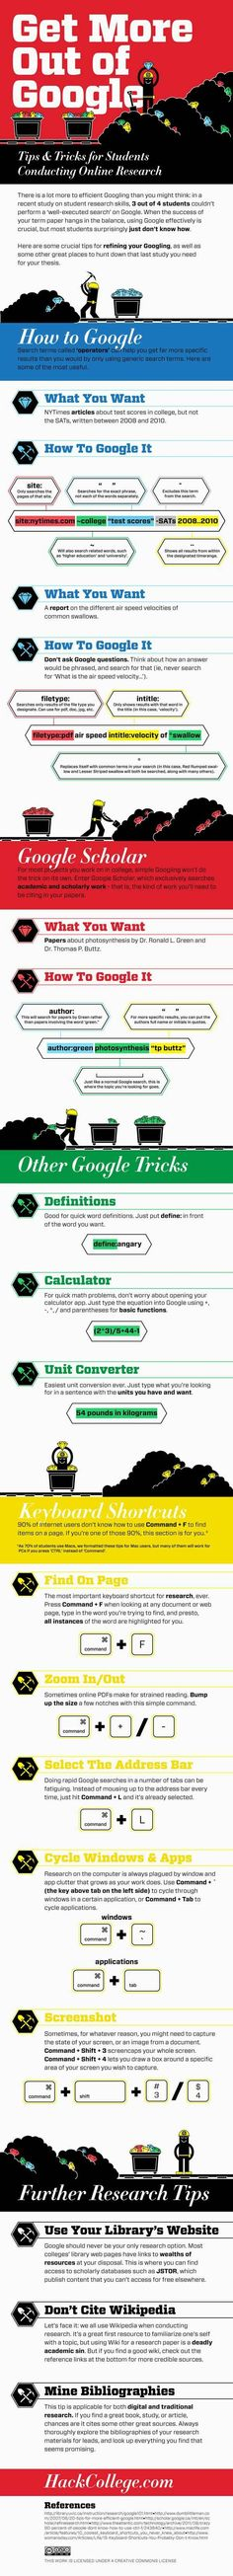 How To Google like a PRO - Advanced Operators and Search Technique Infographic - Really Good for Noobs and Slacker Vets ; ] #inforgraphic